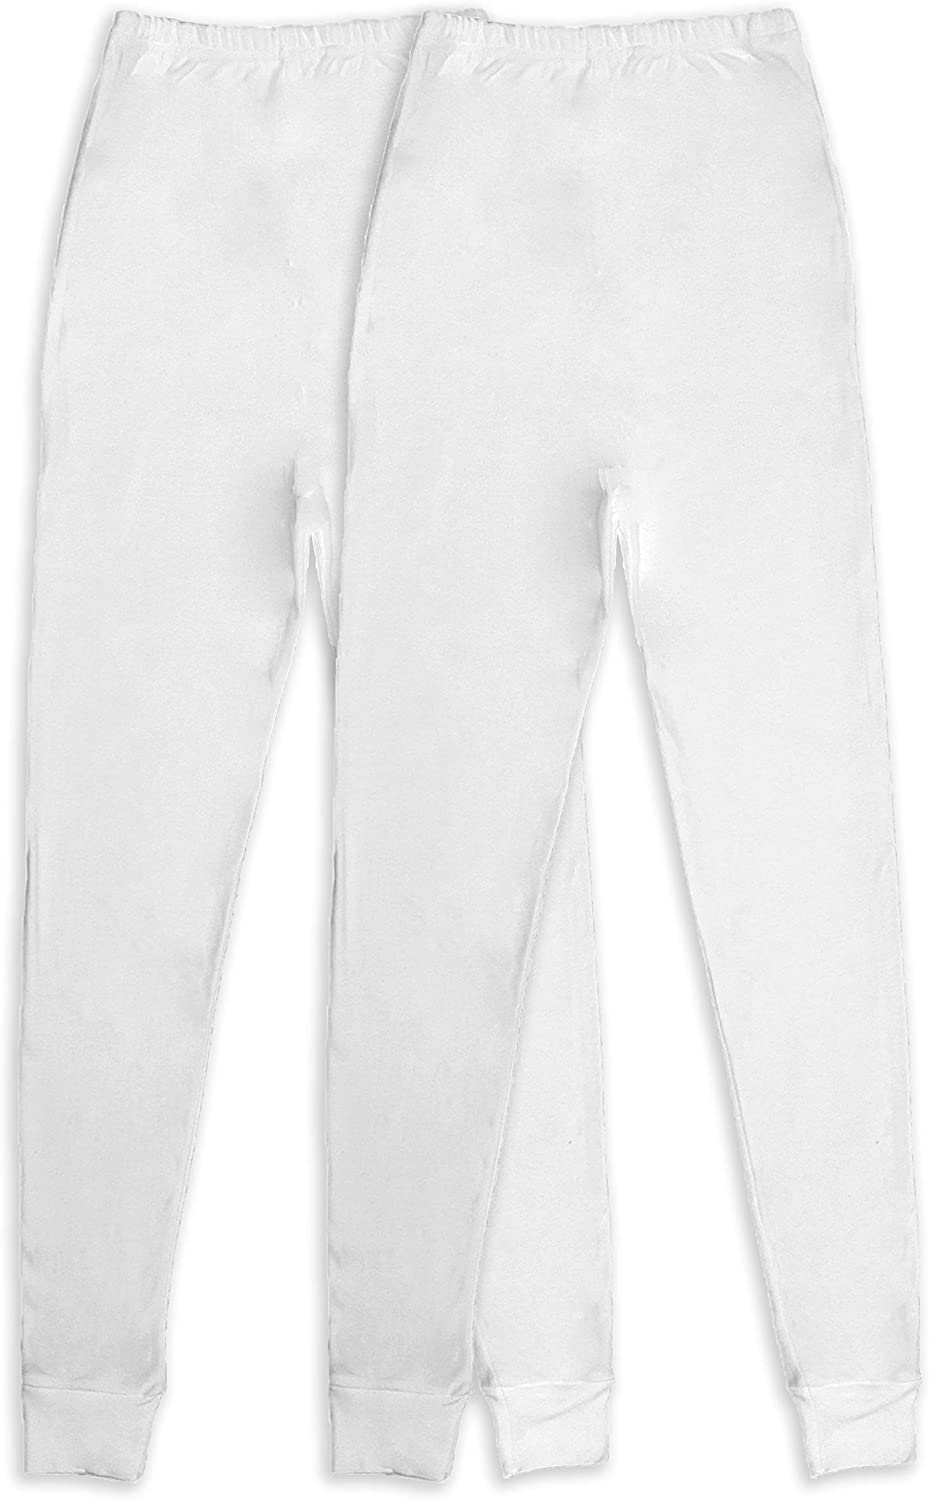 Andrew Scott Women's 2 Pack Long Thermal Fleece Cotton Legging Pants at  Women's Clothing store